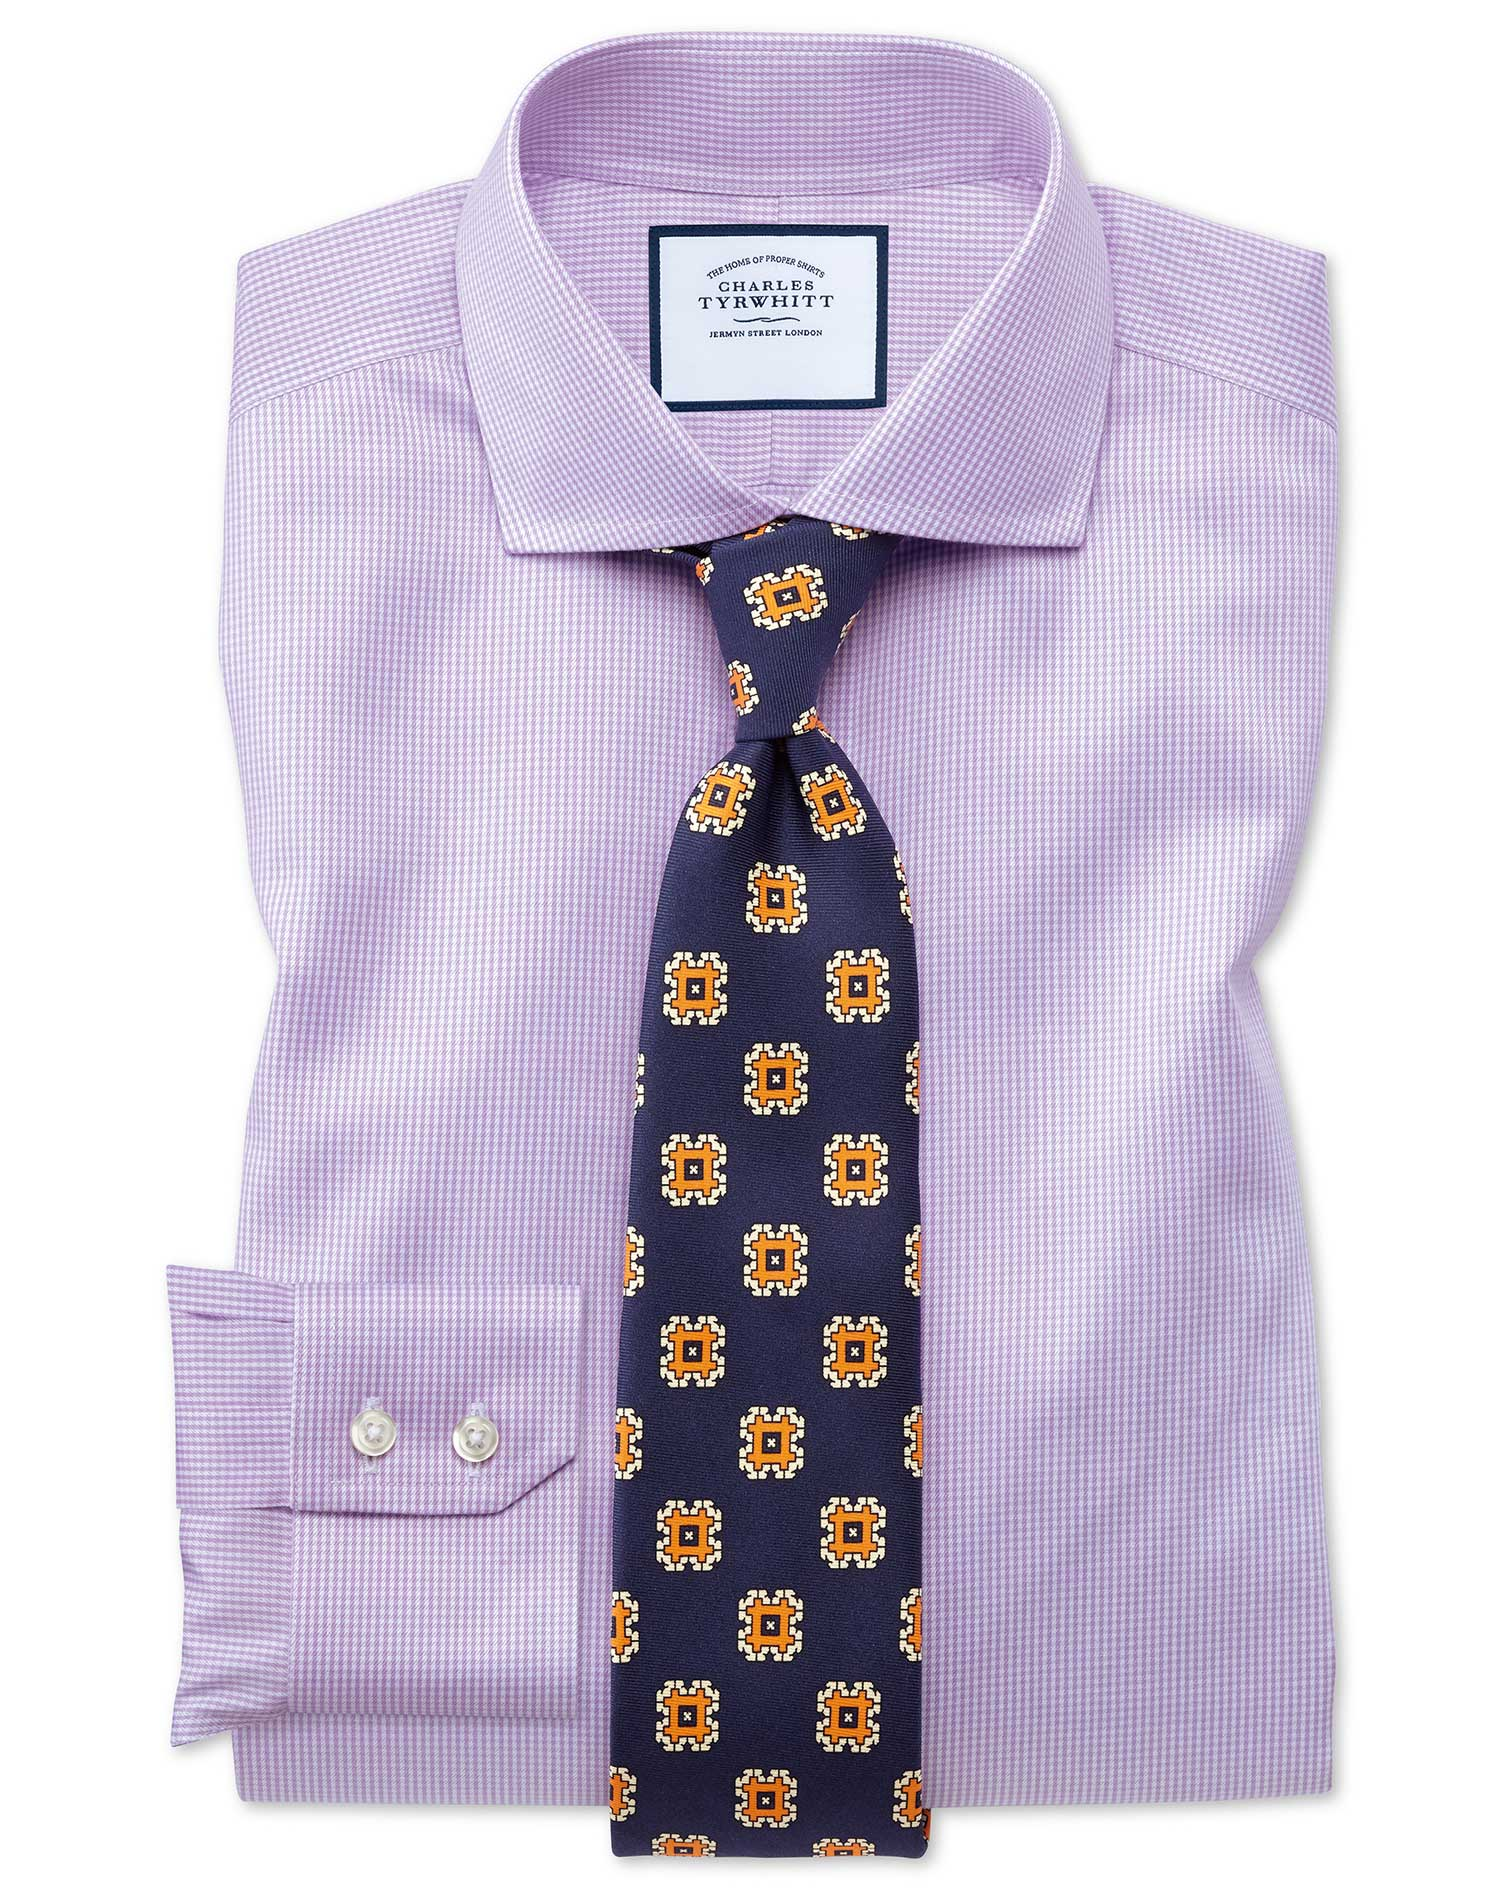 Slim Fit Cutaway Non-Iron Puppytooth Lilac Cotton Formal Shirt Single Cuff Size 16/38 by Charles Tyr